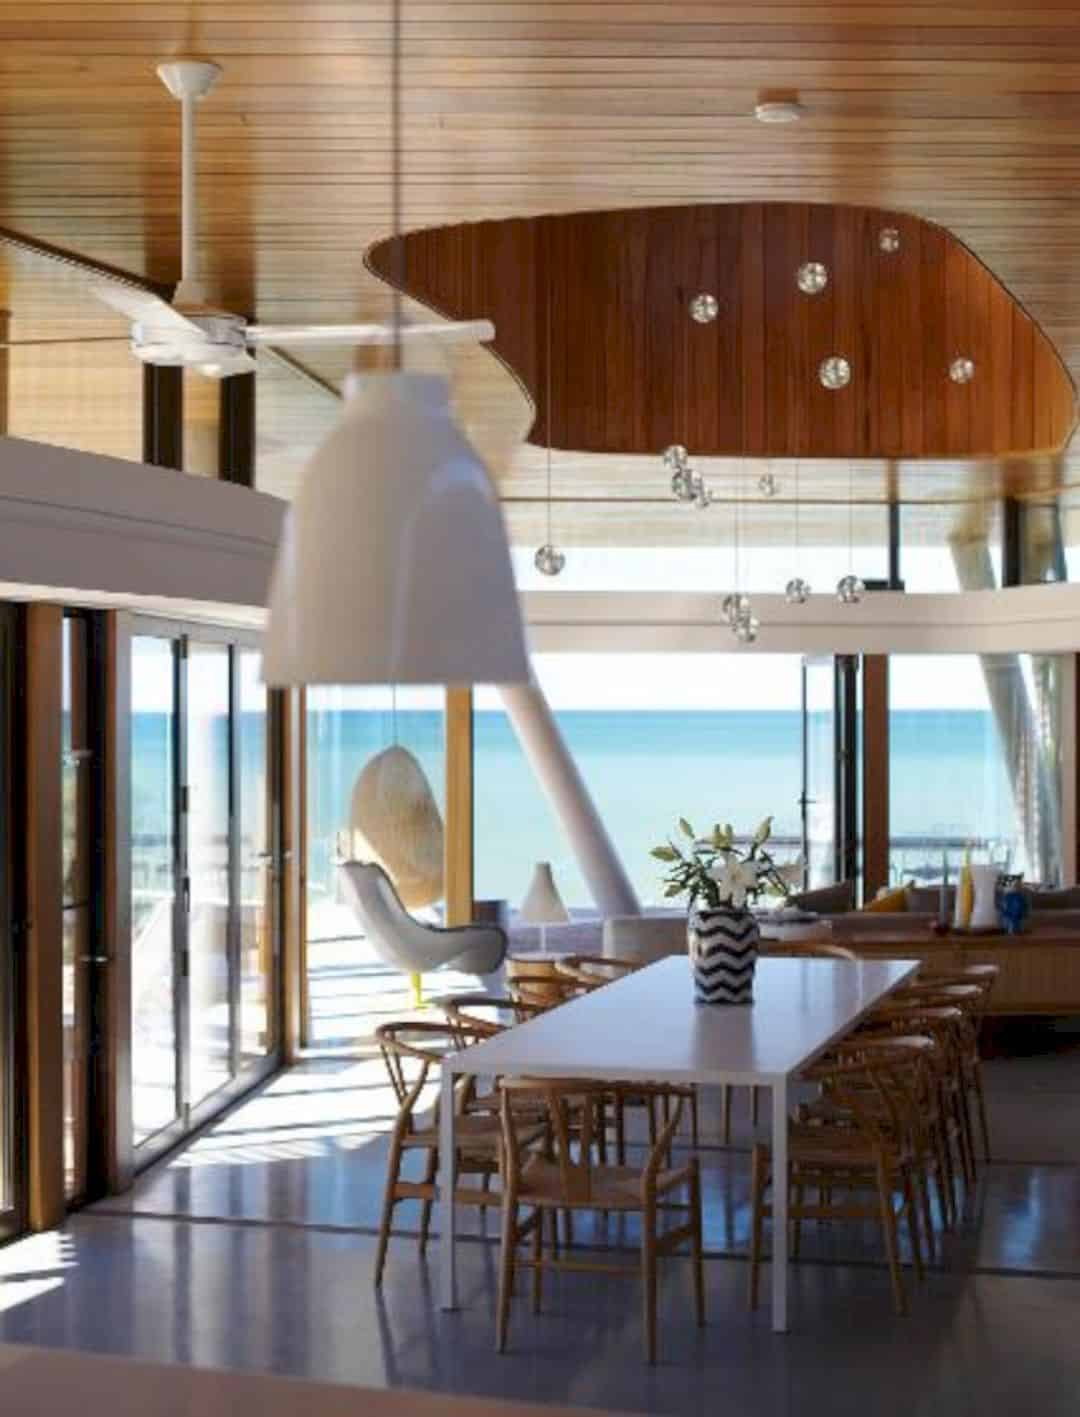 Austinmer Beach House: A Connected Family Home with Illawarra Escarpment and Surrounding Coastal